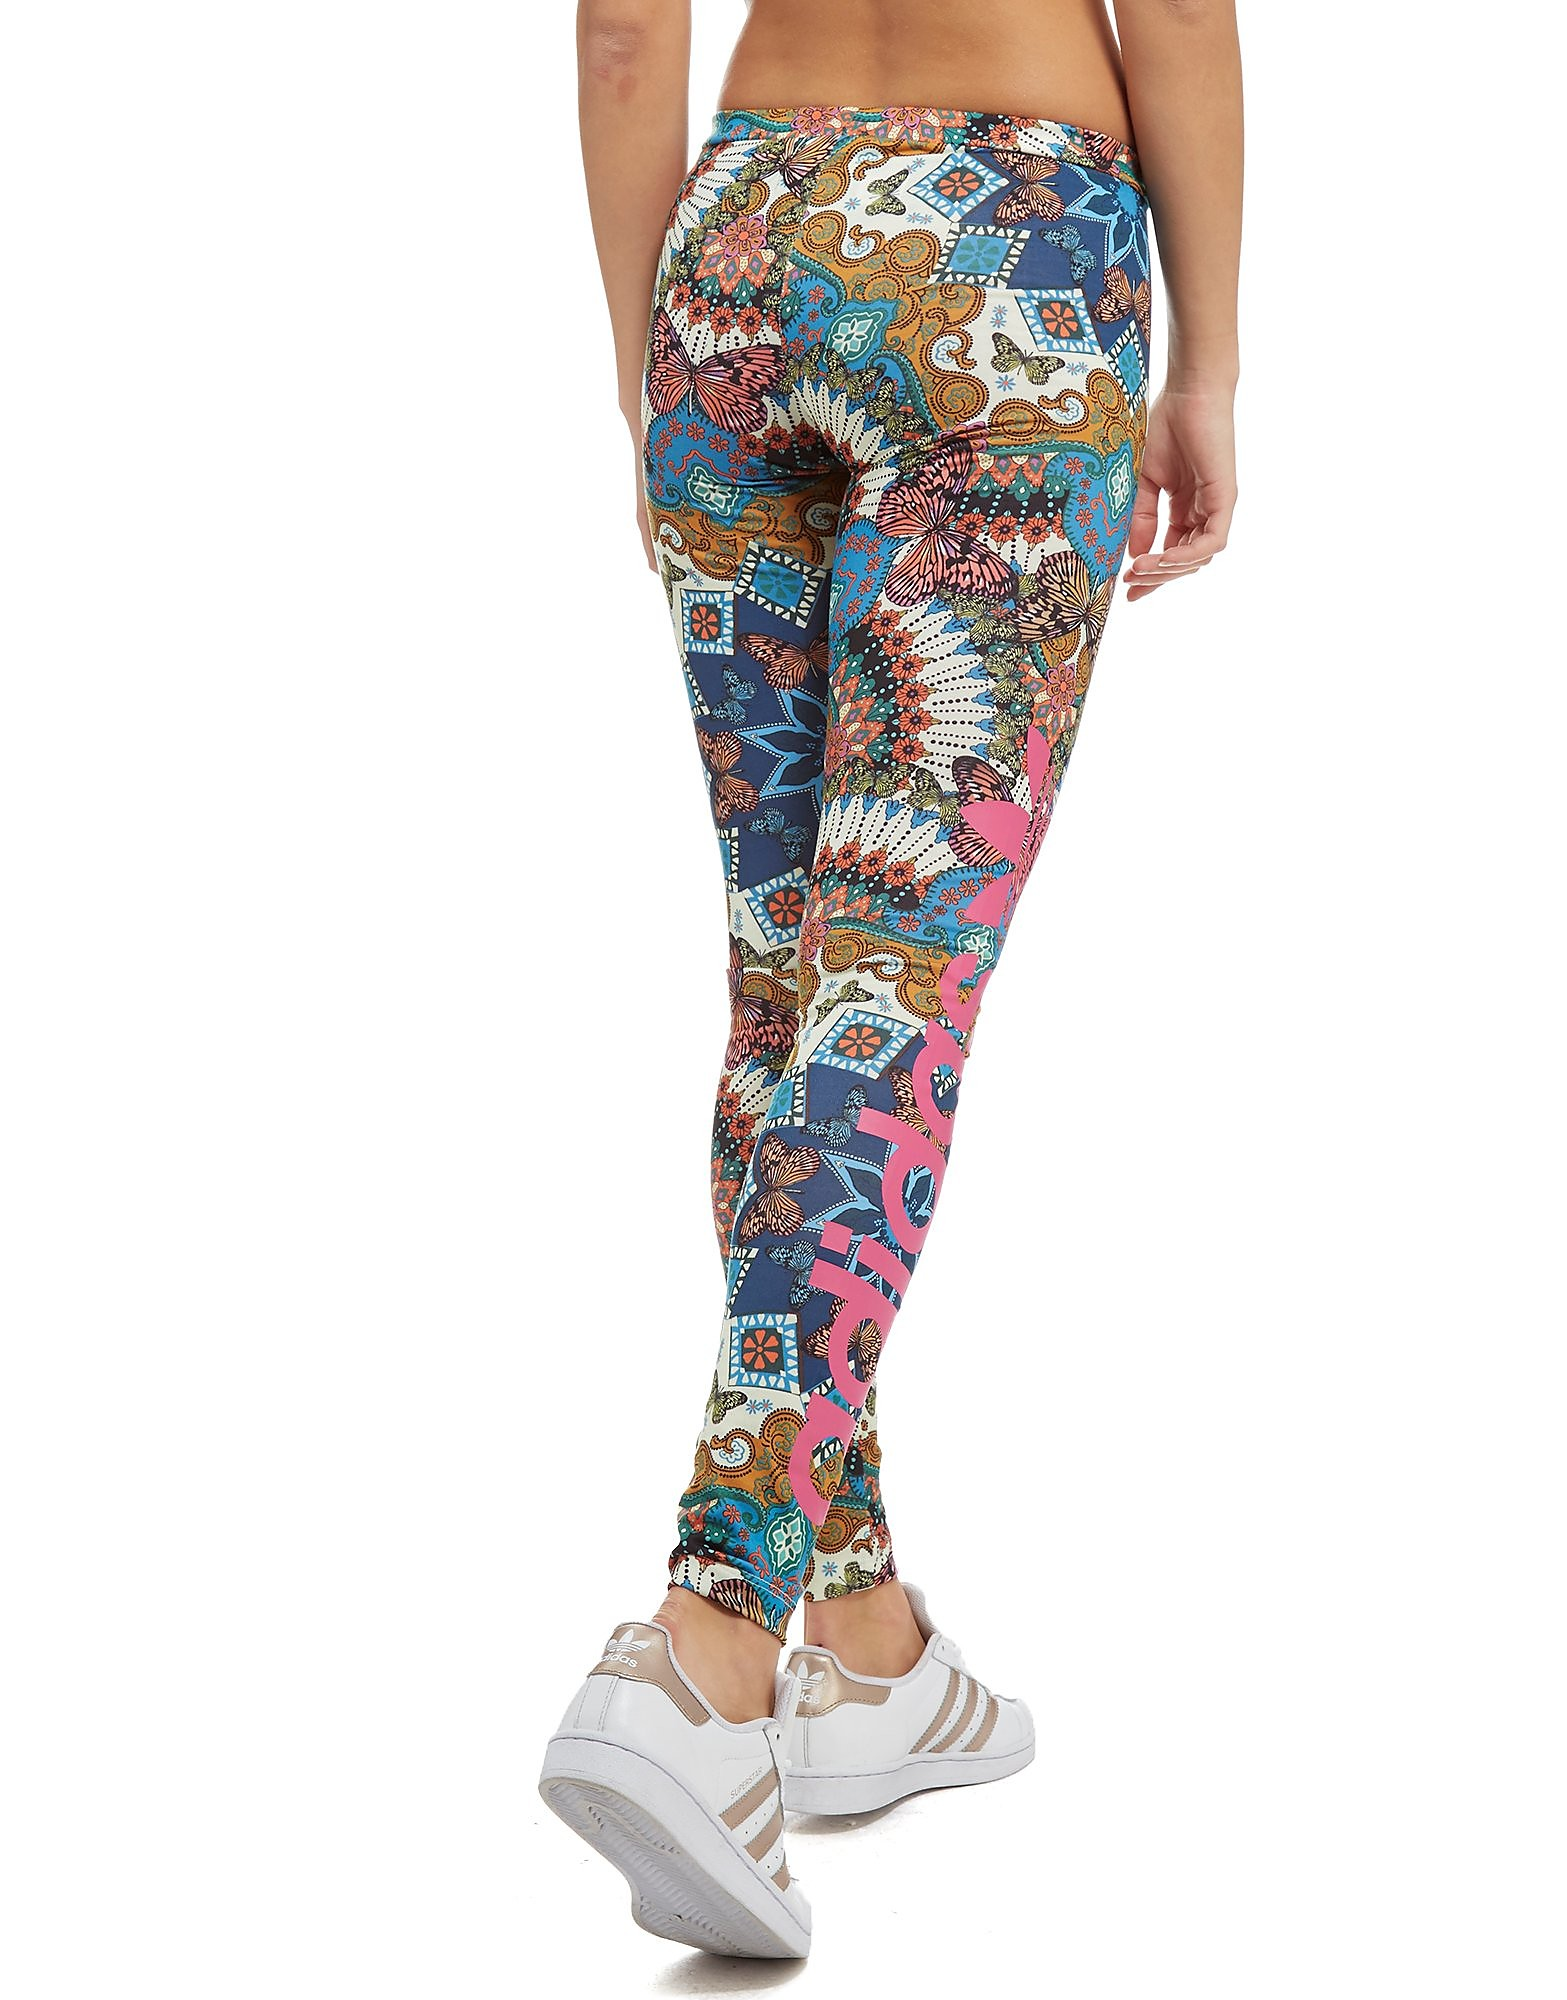 adidas Originals Borbomix Leggings